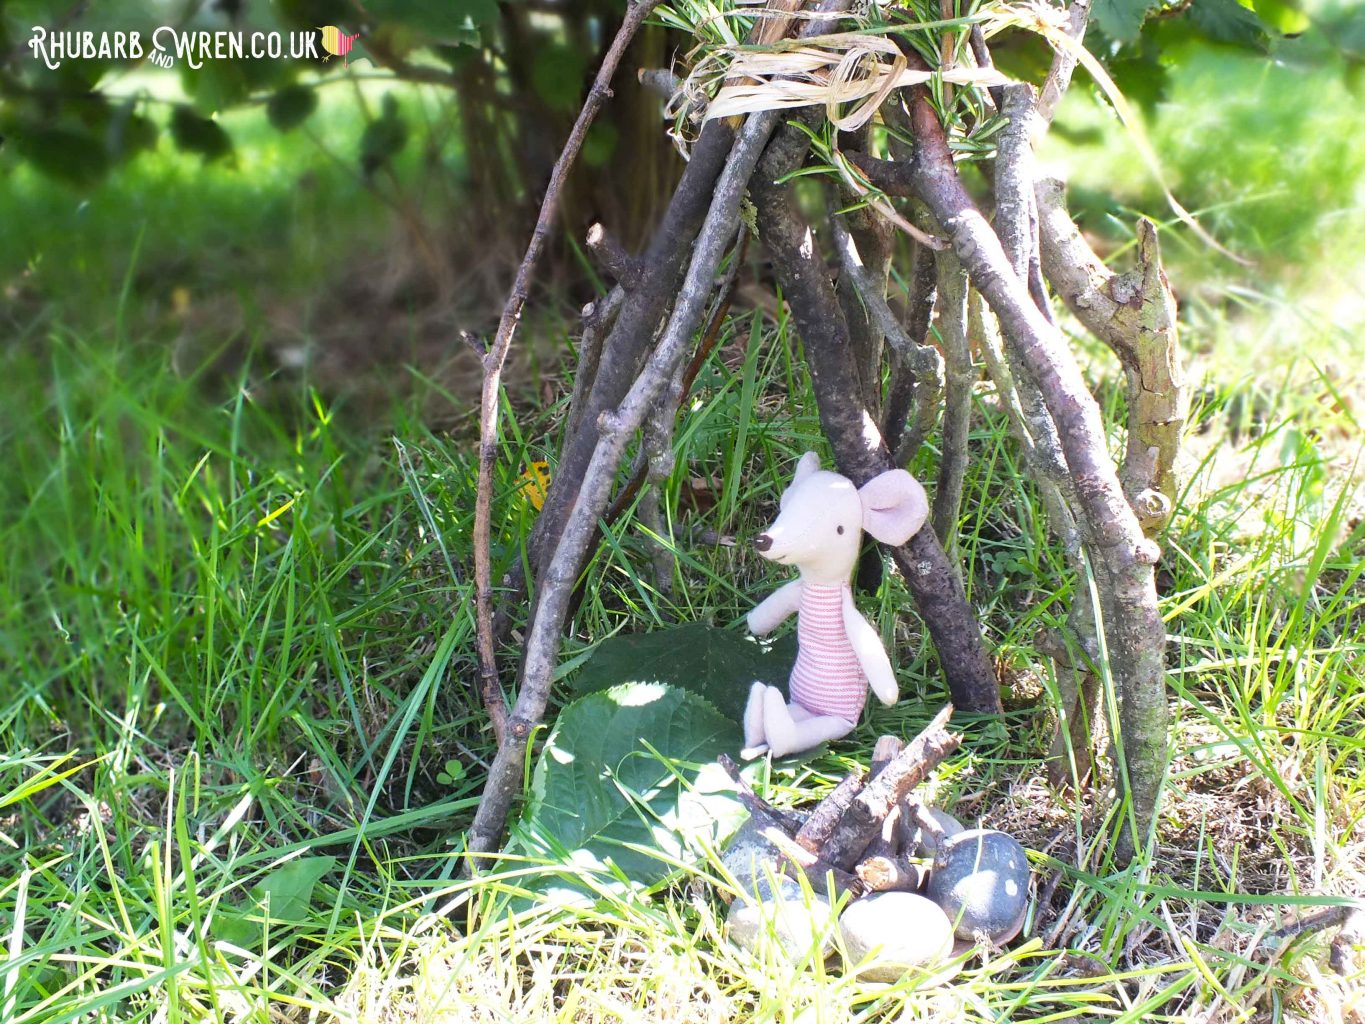 Maileg mouse toy sitting in mini twig teepee with mini campfire